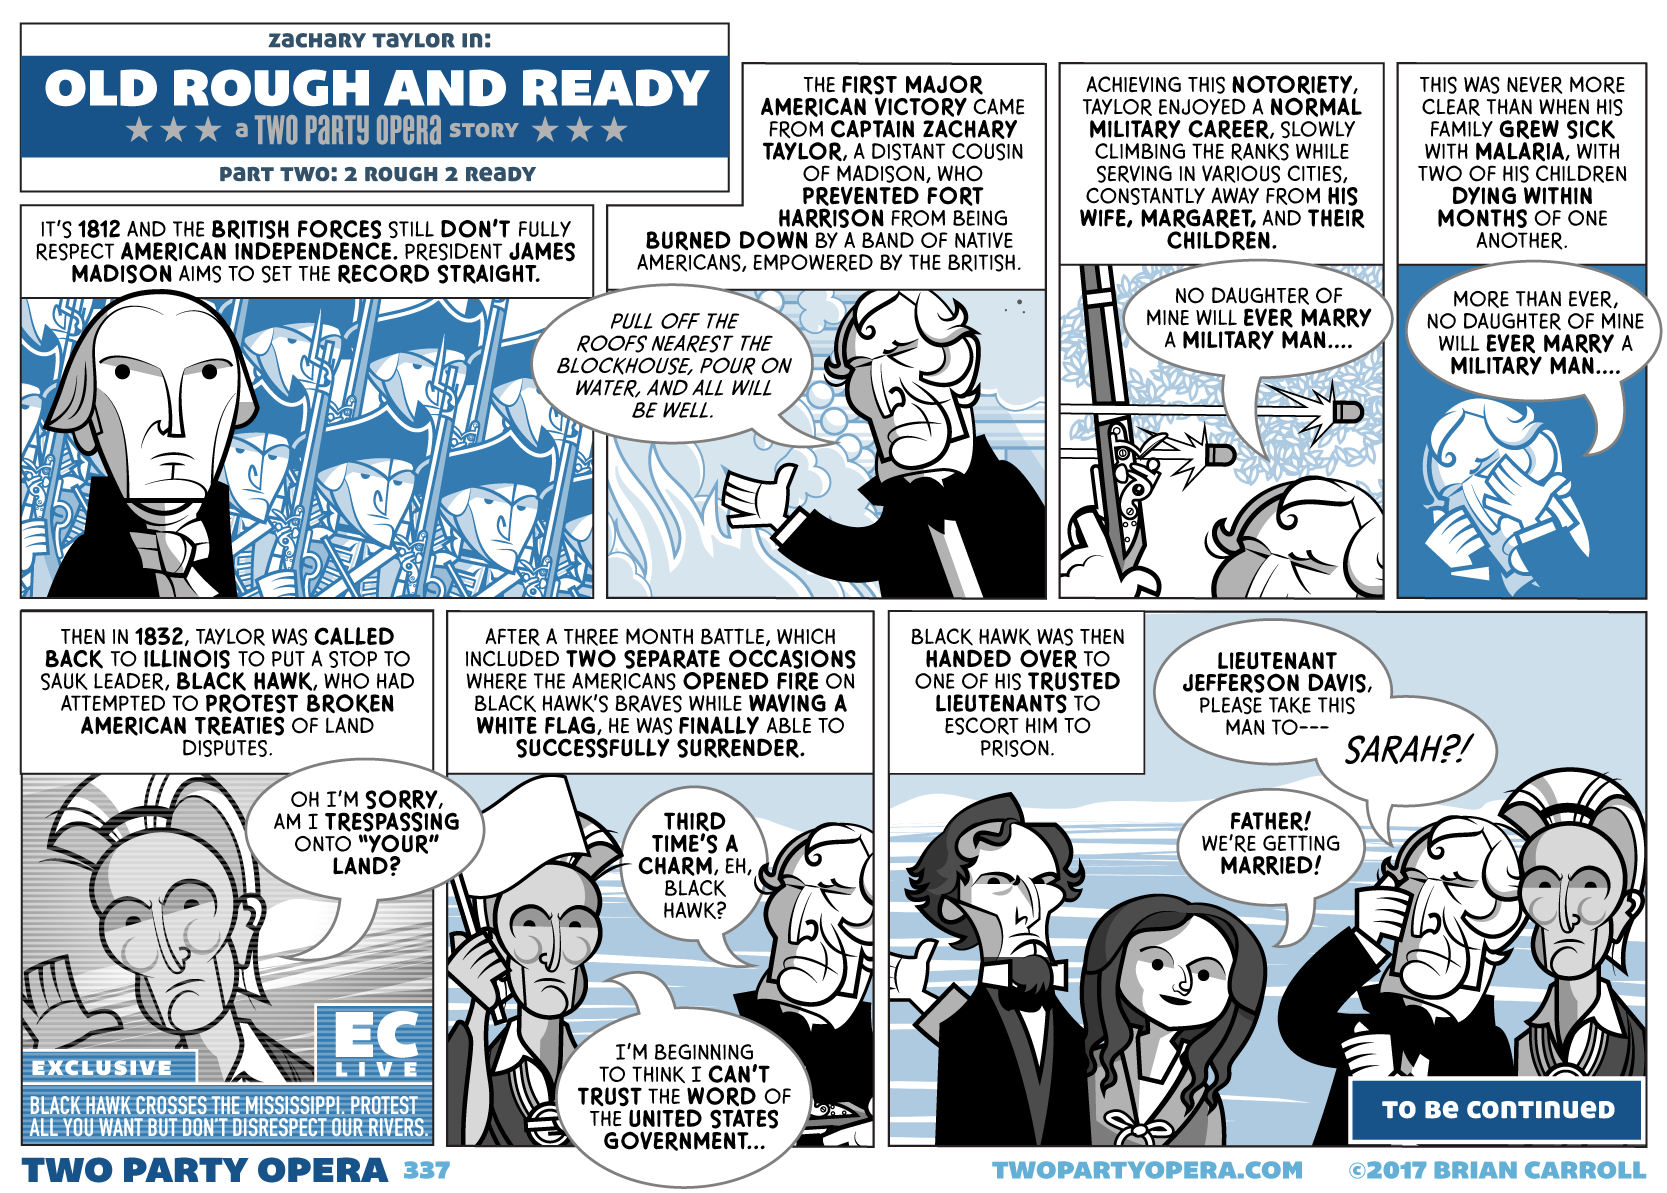 Old Rough and Ready – Part Two: 2 Rough 2 Ready